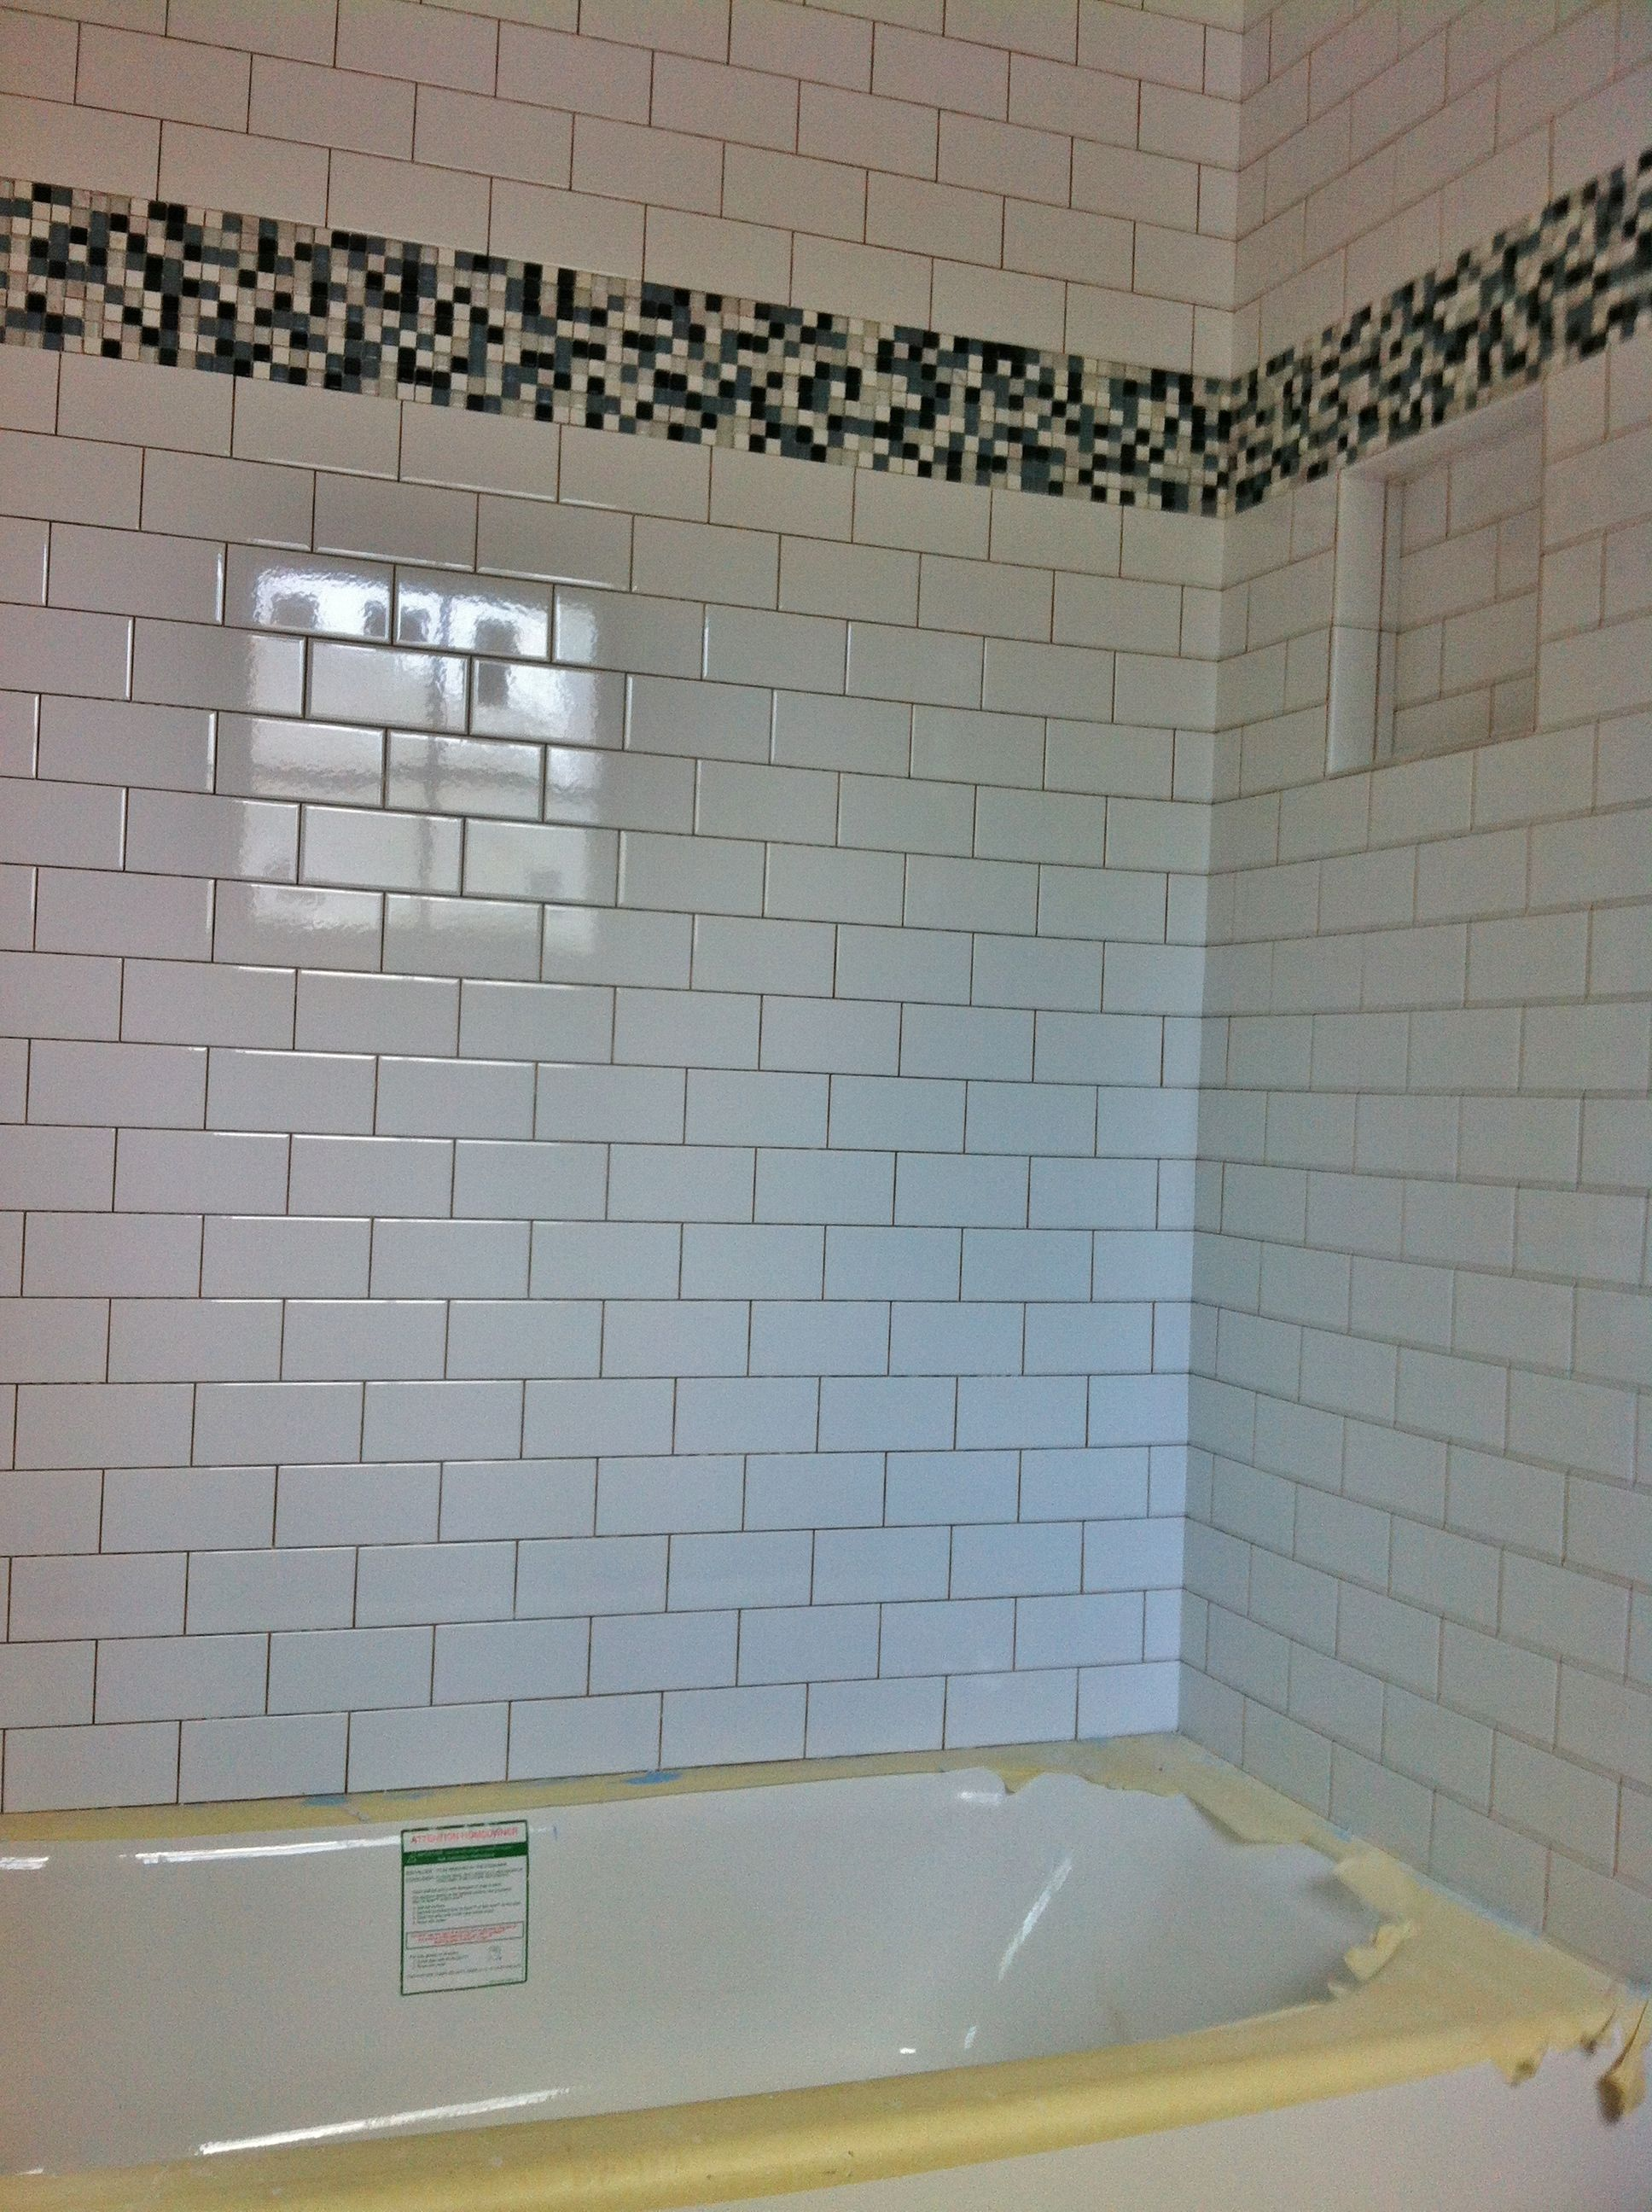 3x6 white porcelain subway tile with glass and stone accent at tub ...